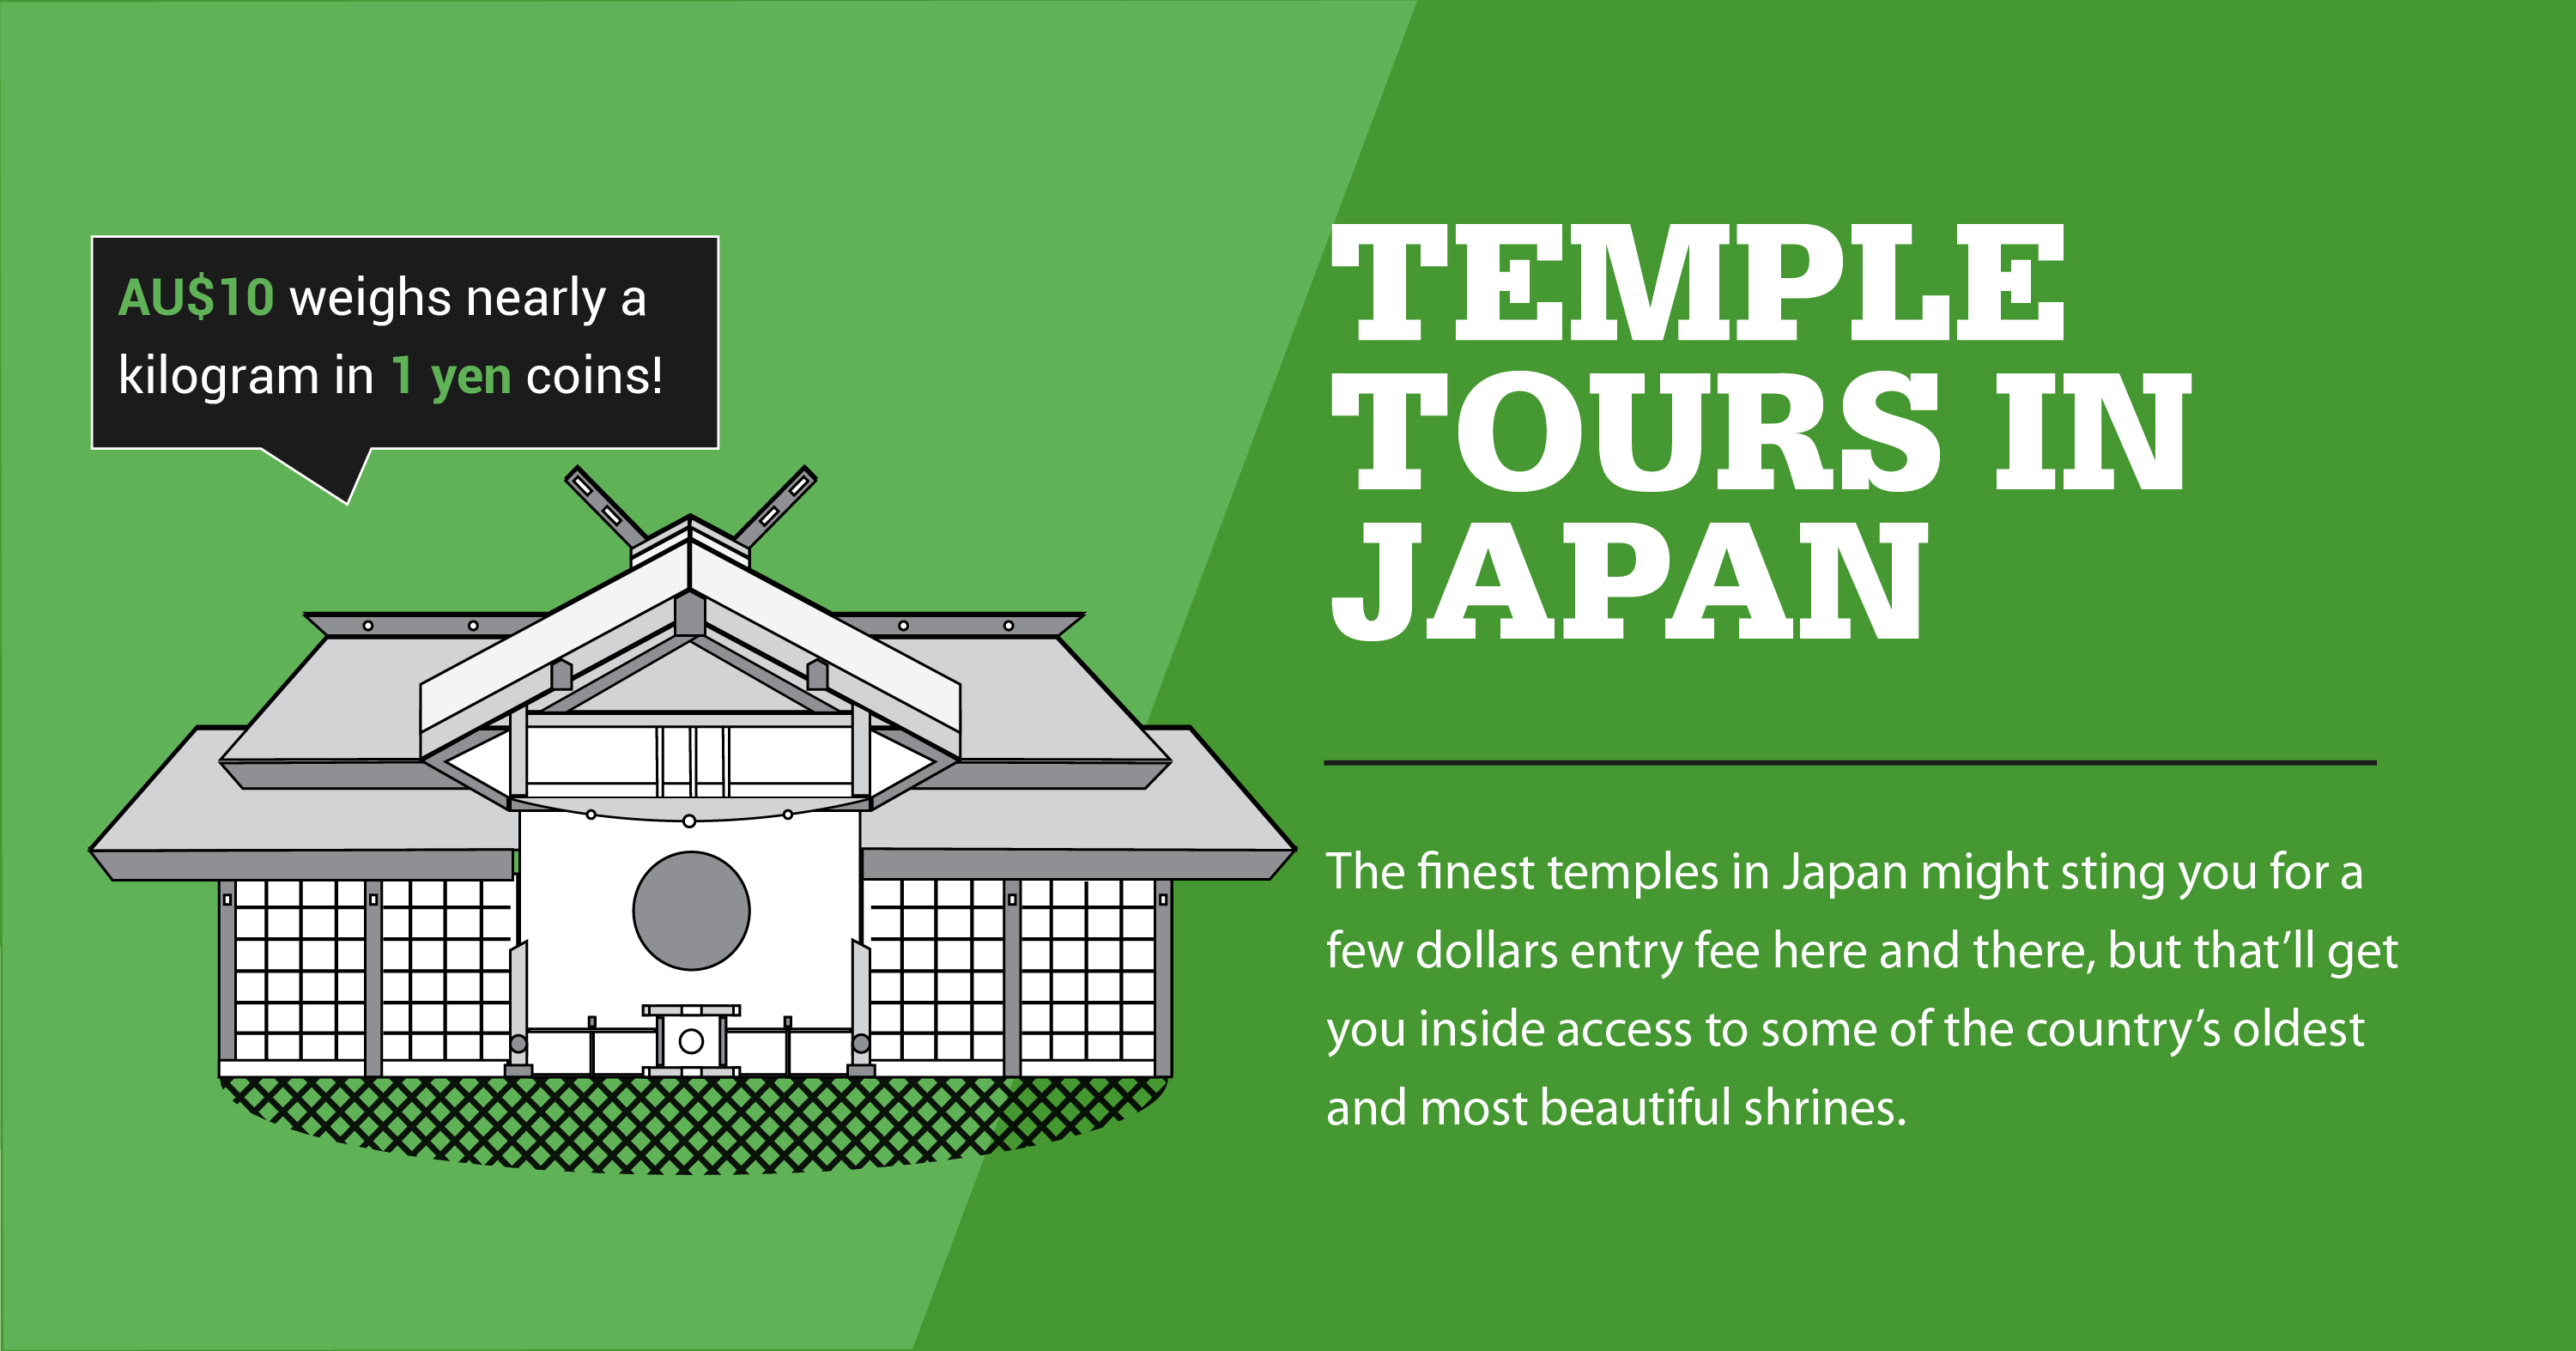 Temple tours in Japan